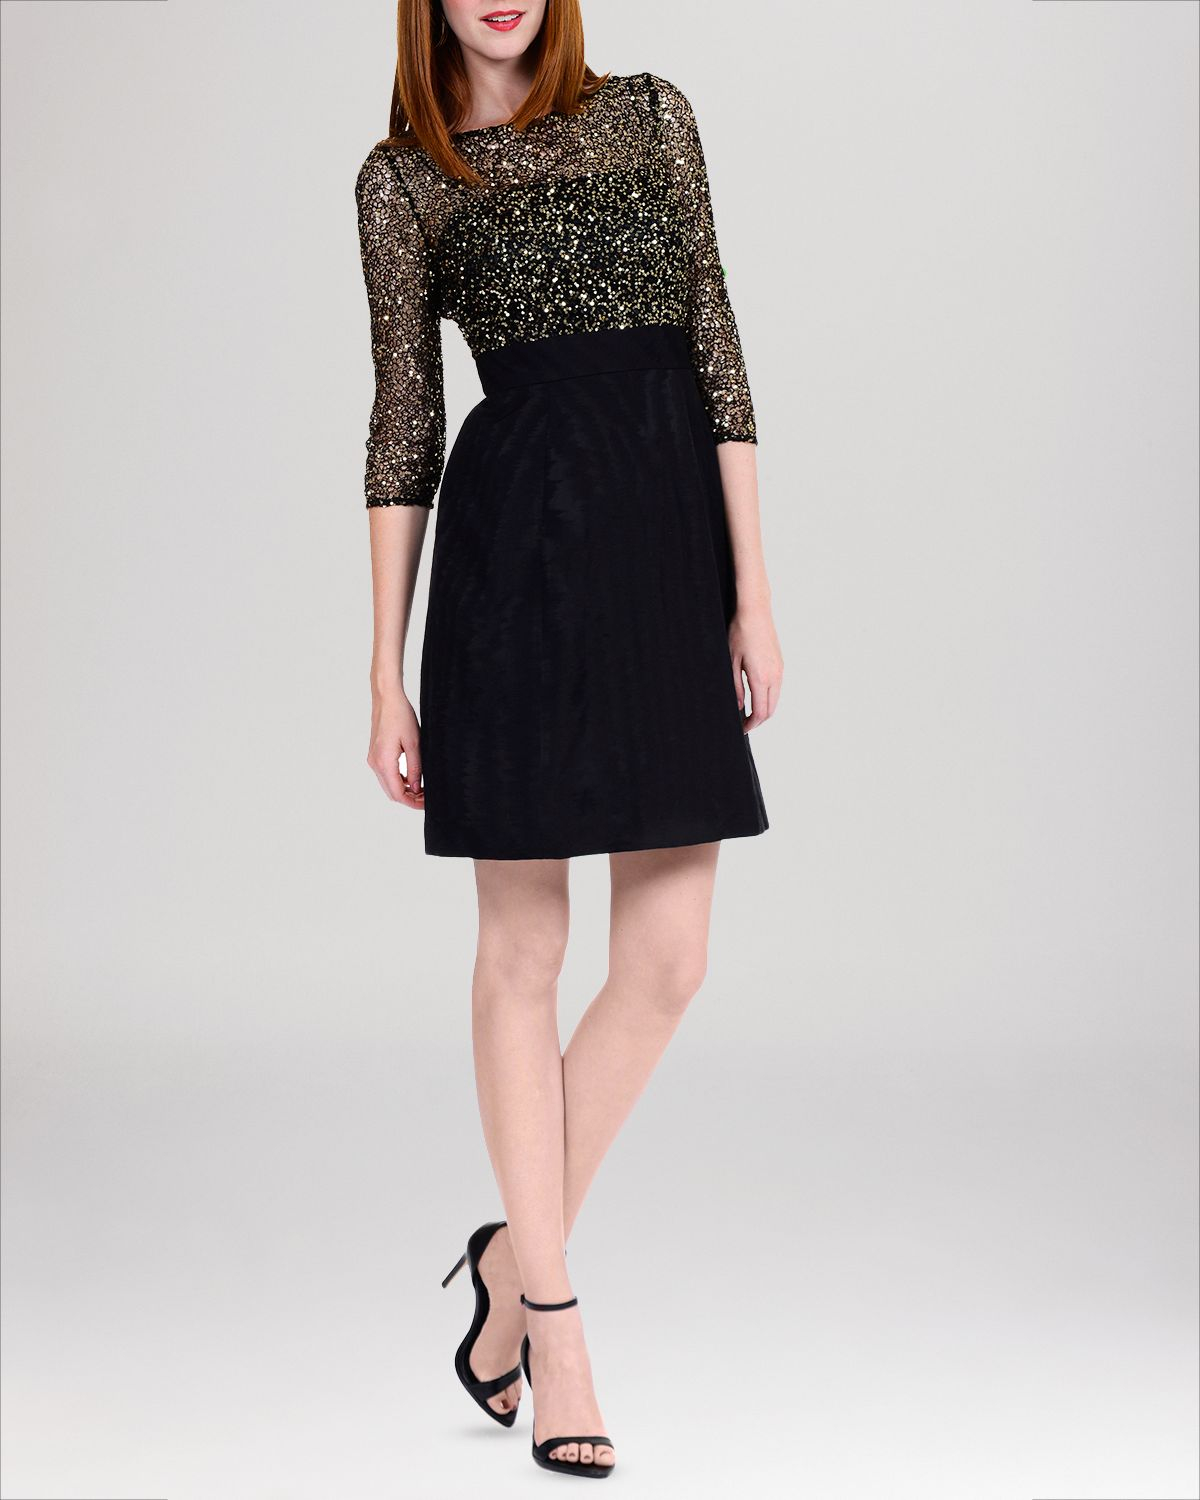 Lyst - Kay Unger Dress - Three Quarter Sleeve Sequin Lace in Black